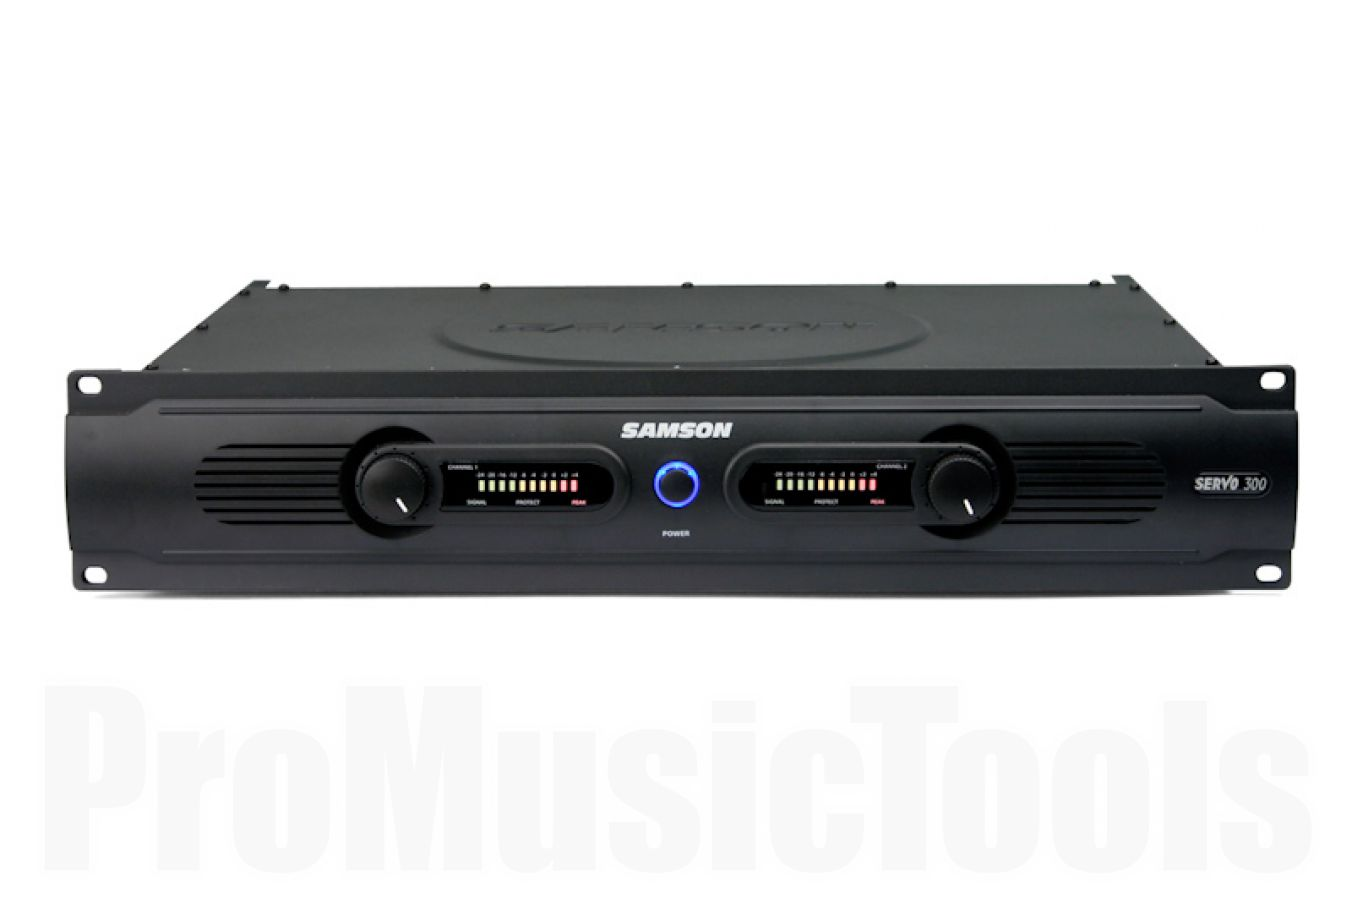 Samson Servo 300 Power Amplifier